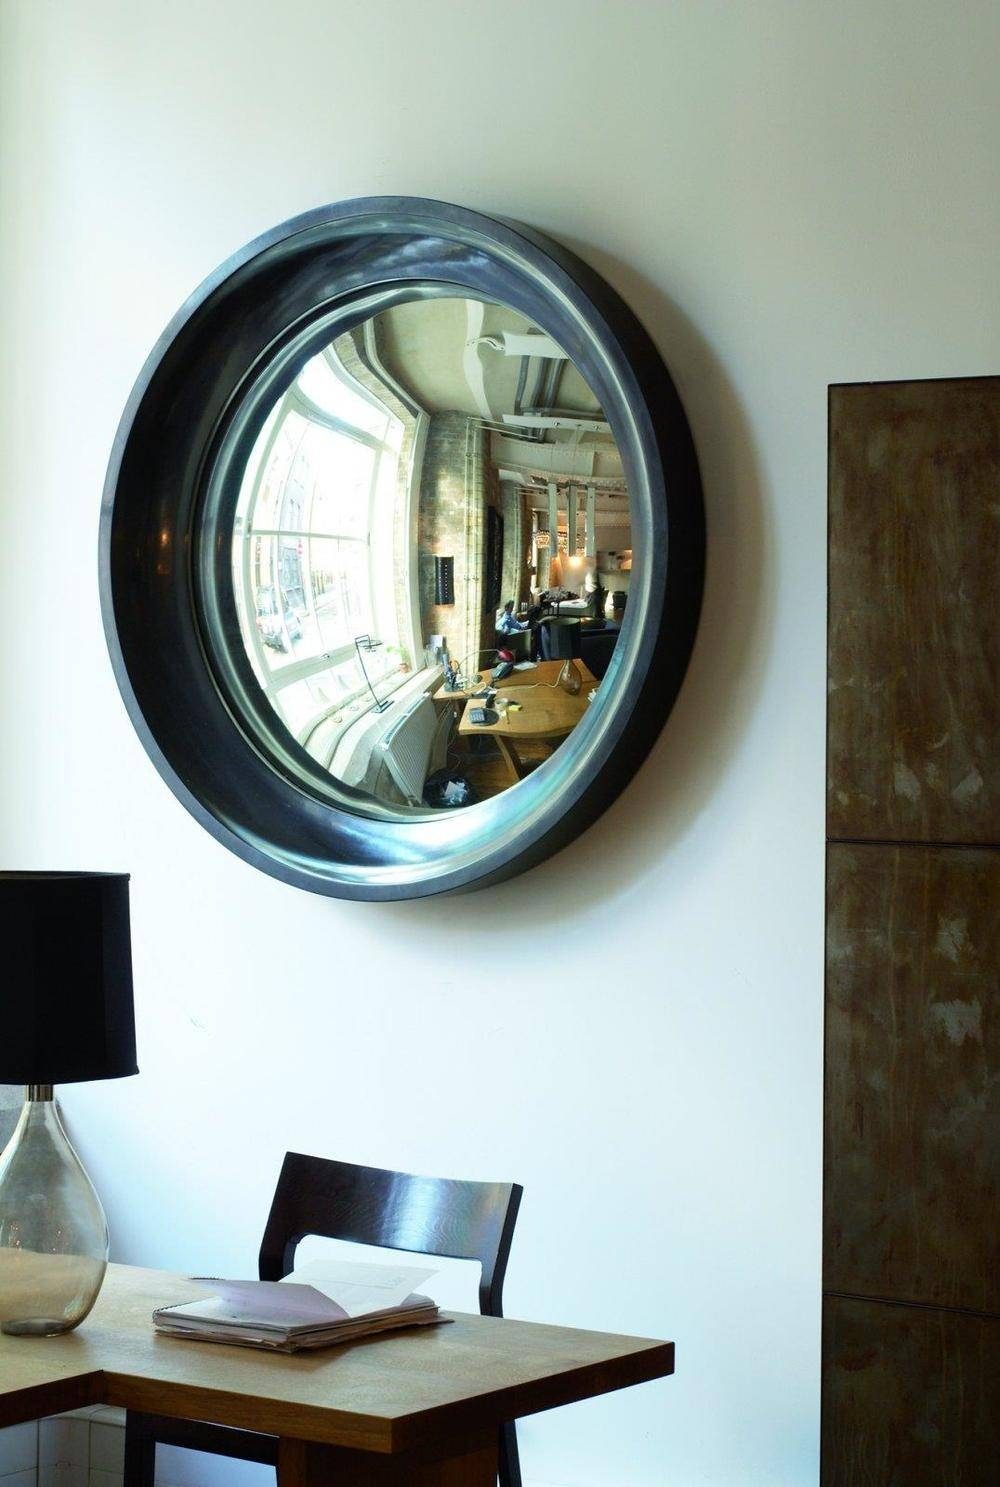 15 Interiors Turned Abstract Wall Arta Convex Mirror — Designed for Convex Wall Mirrors (Image 1 of 15)